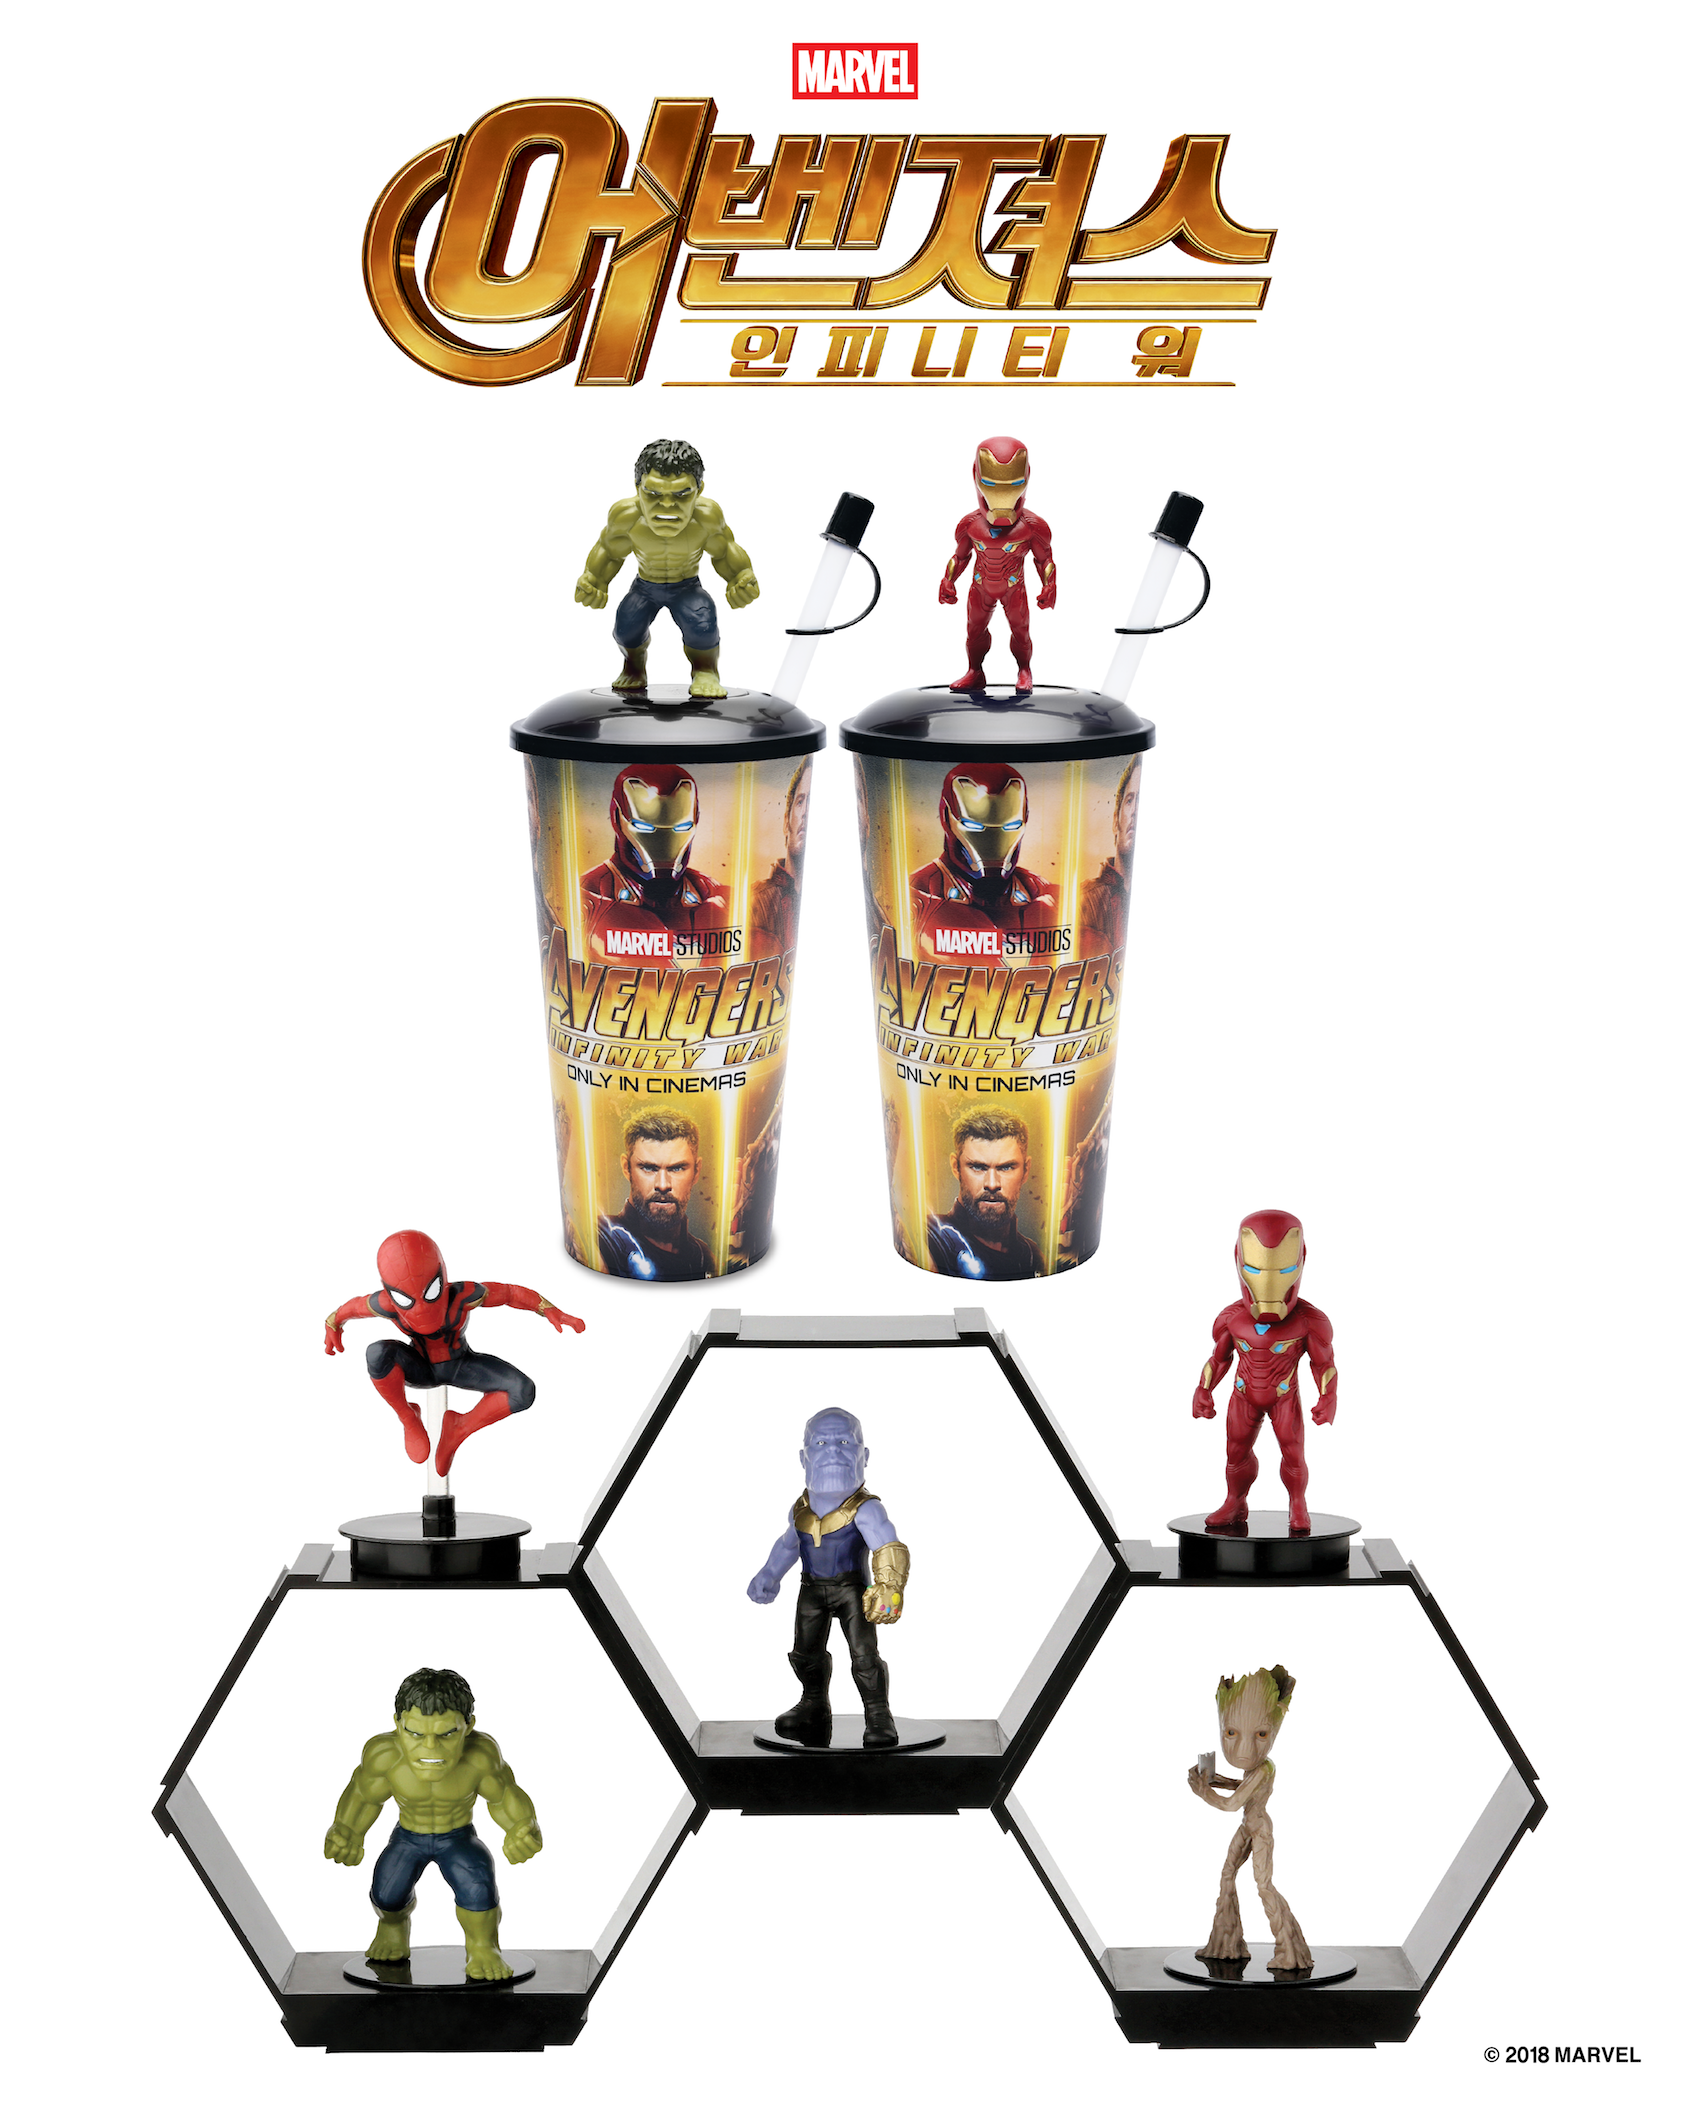 'Avengers: Infinity War, 2018' - TOPPER CUP & HEXAGON - CGV